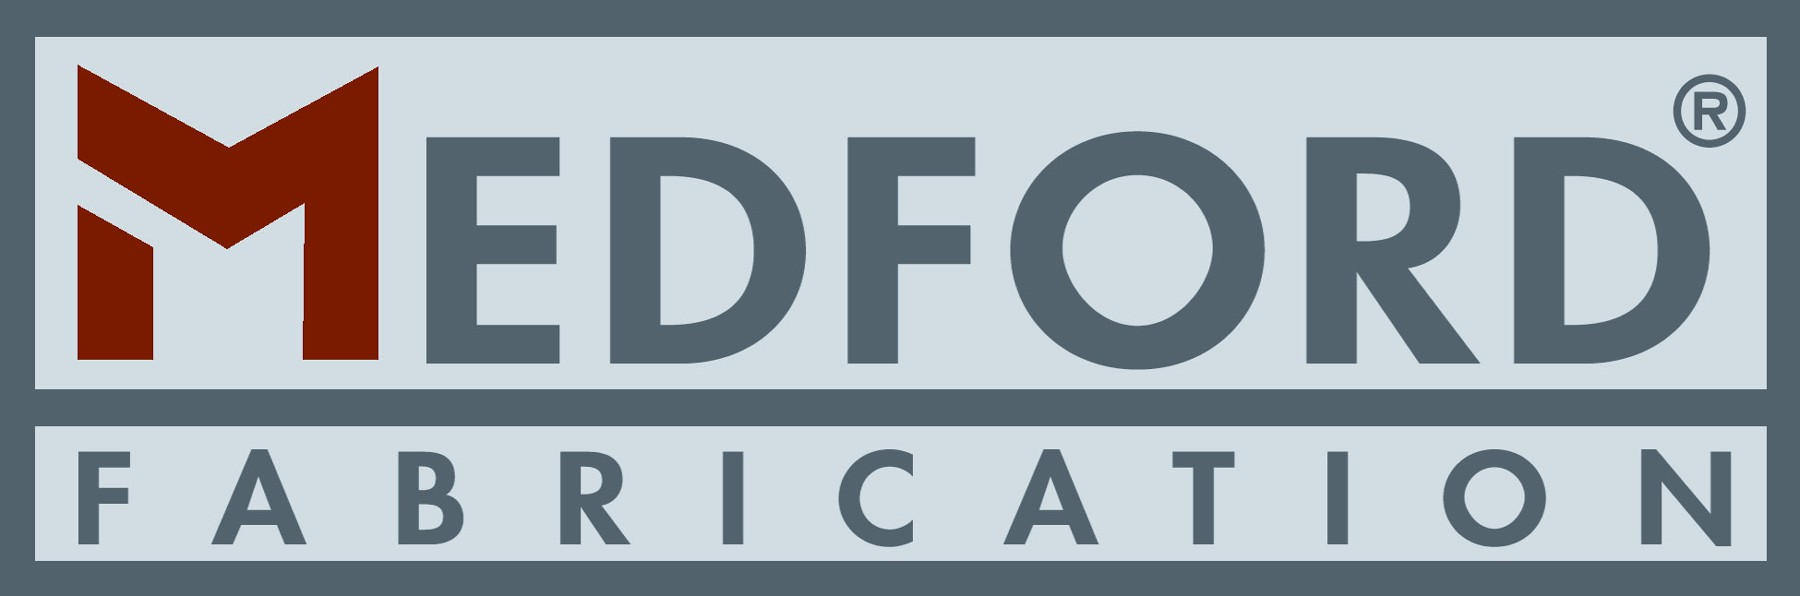 Medford Fabrication-logo